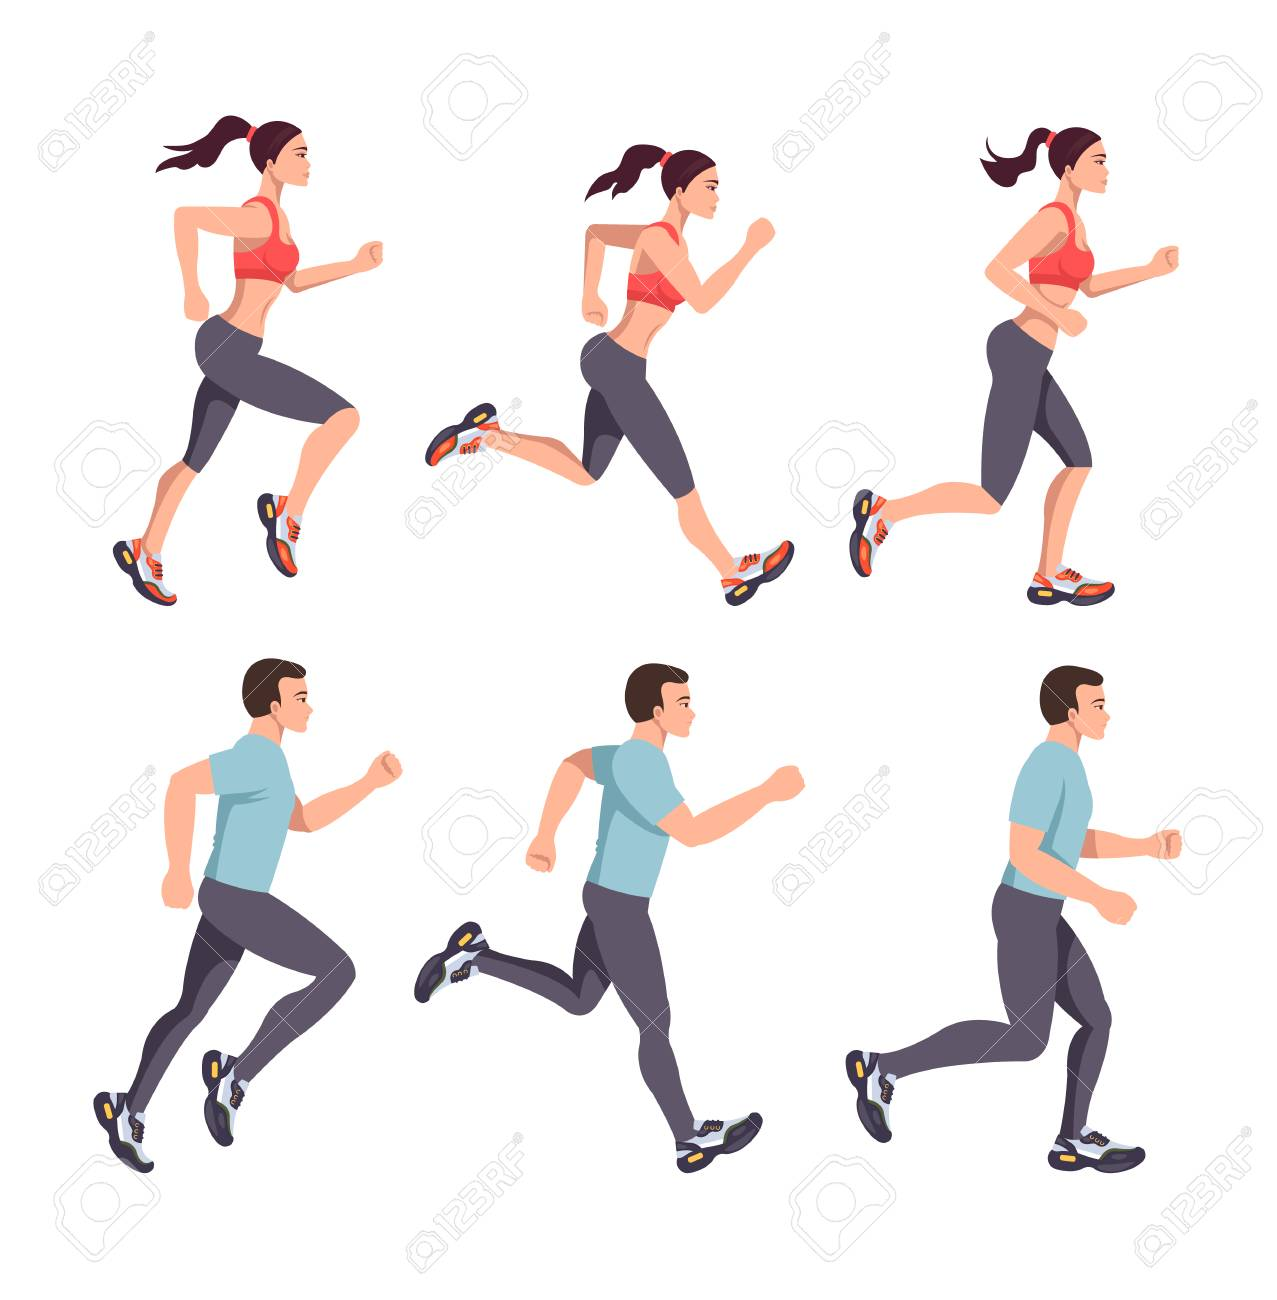 Sport people man and woman characters run. Running stage steps marathon healthy lifestyle concept. Vector flat graphic design isolated illustration set - 119101864